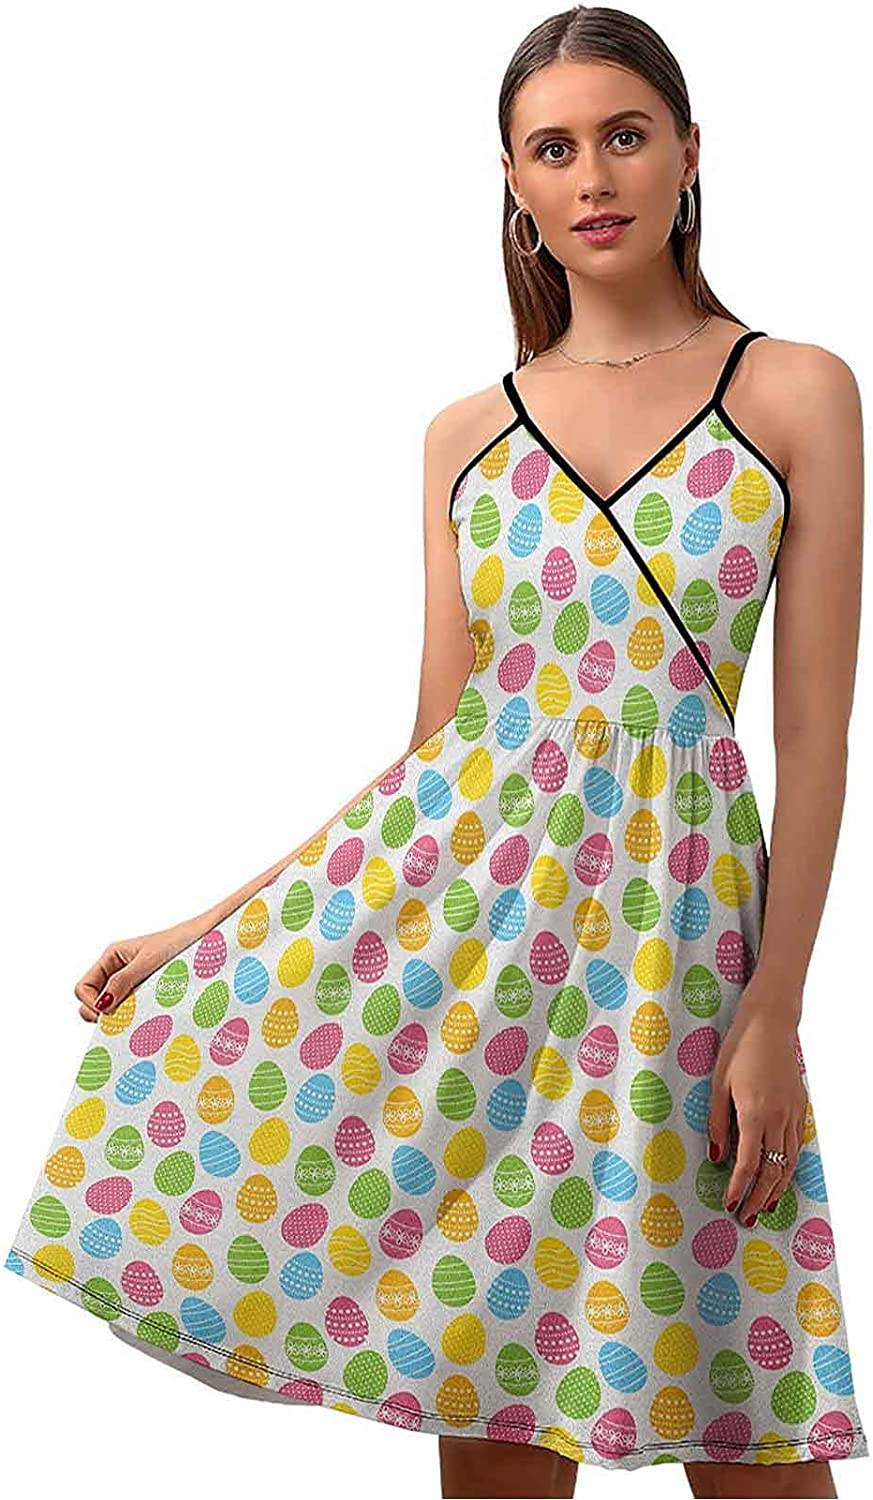 Easter Summer Dresses Casual Greeting Fun Spri The Colorful OFFer Max 86% OFF and